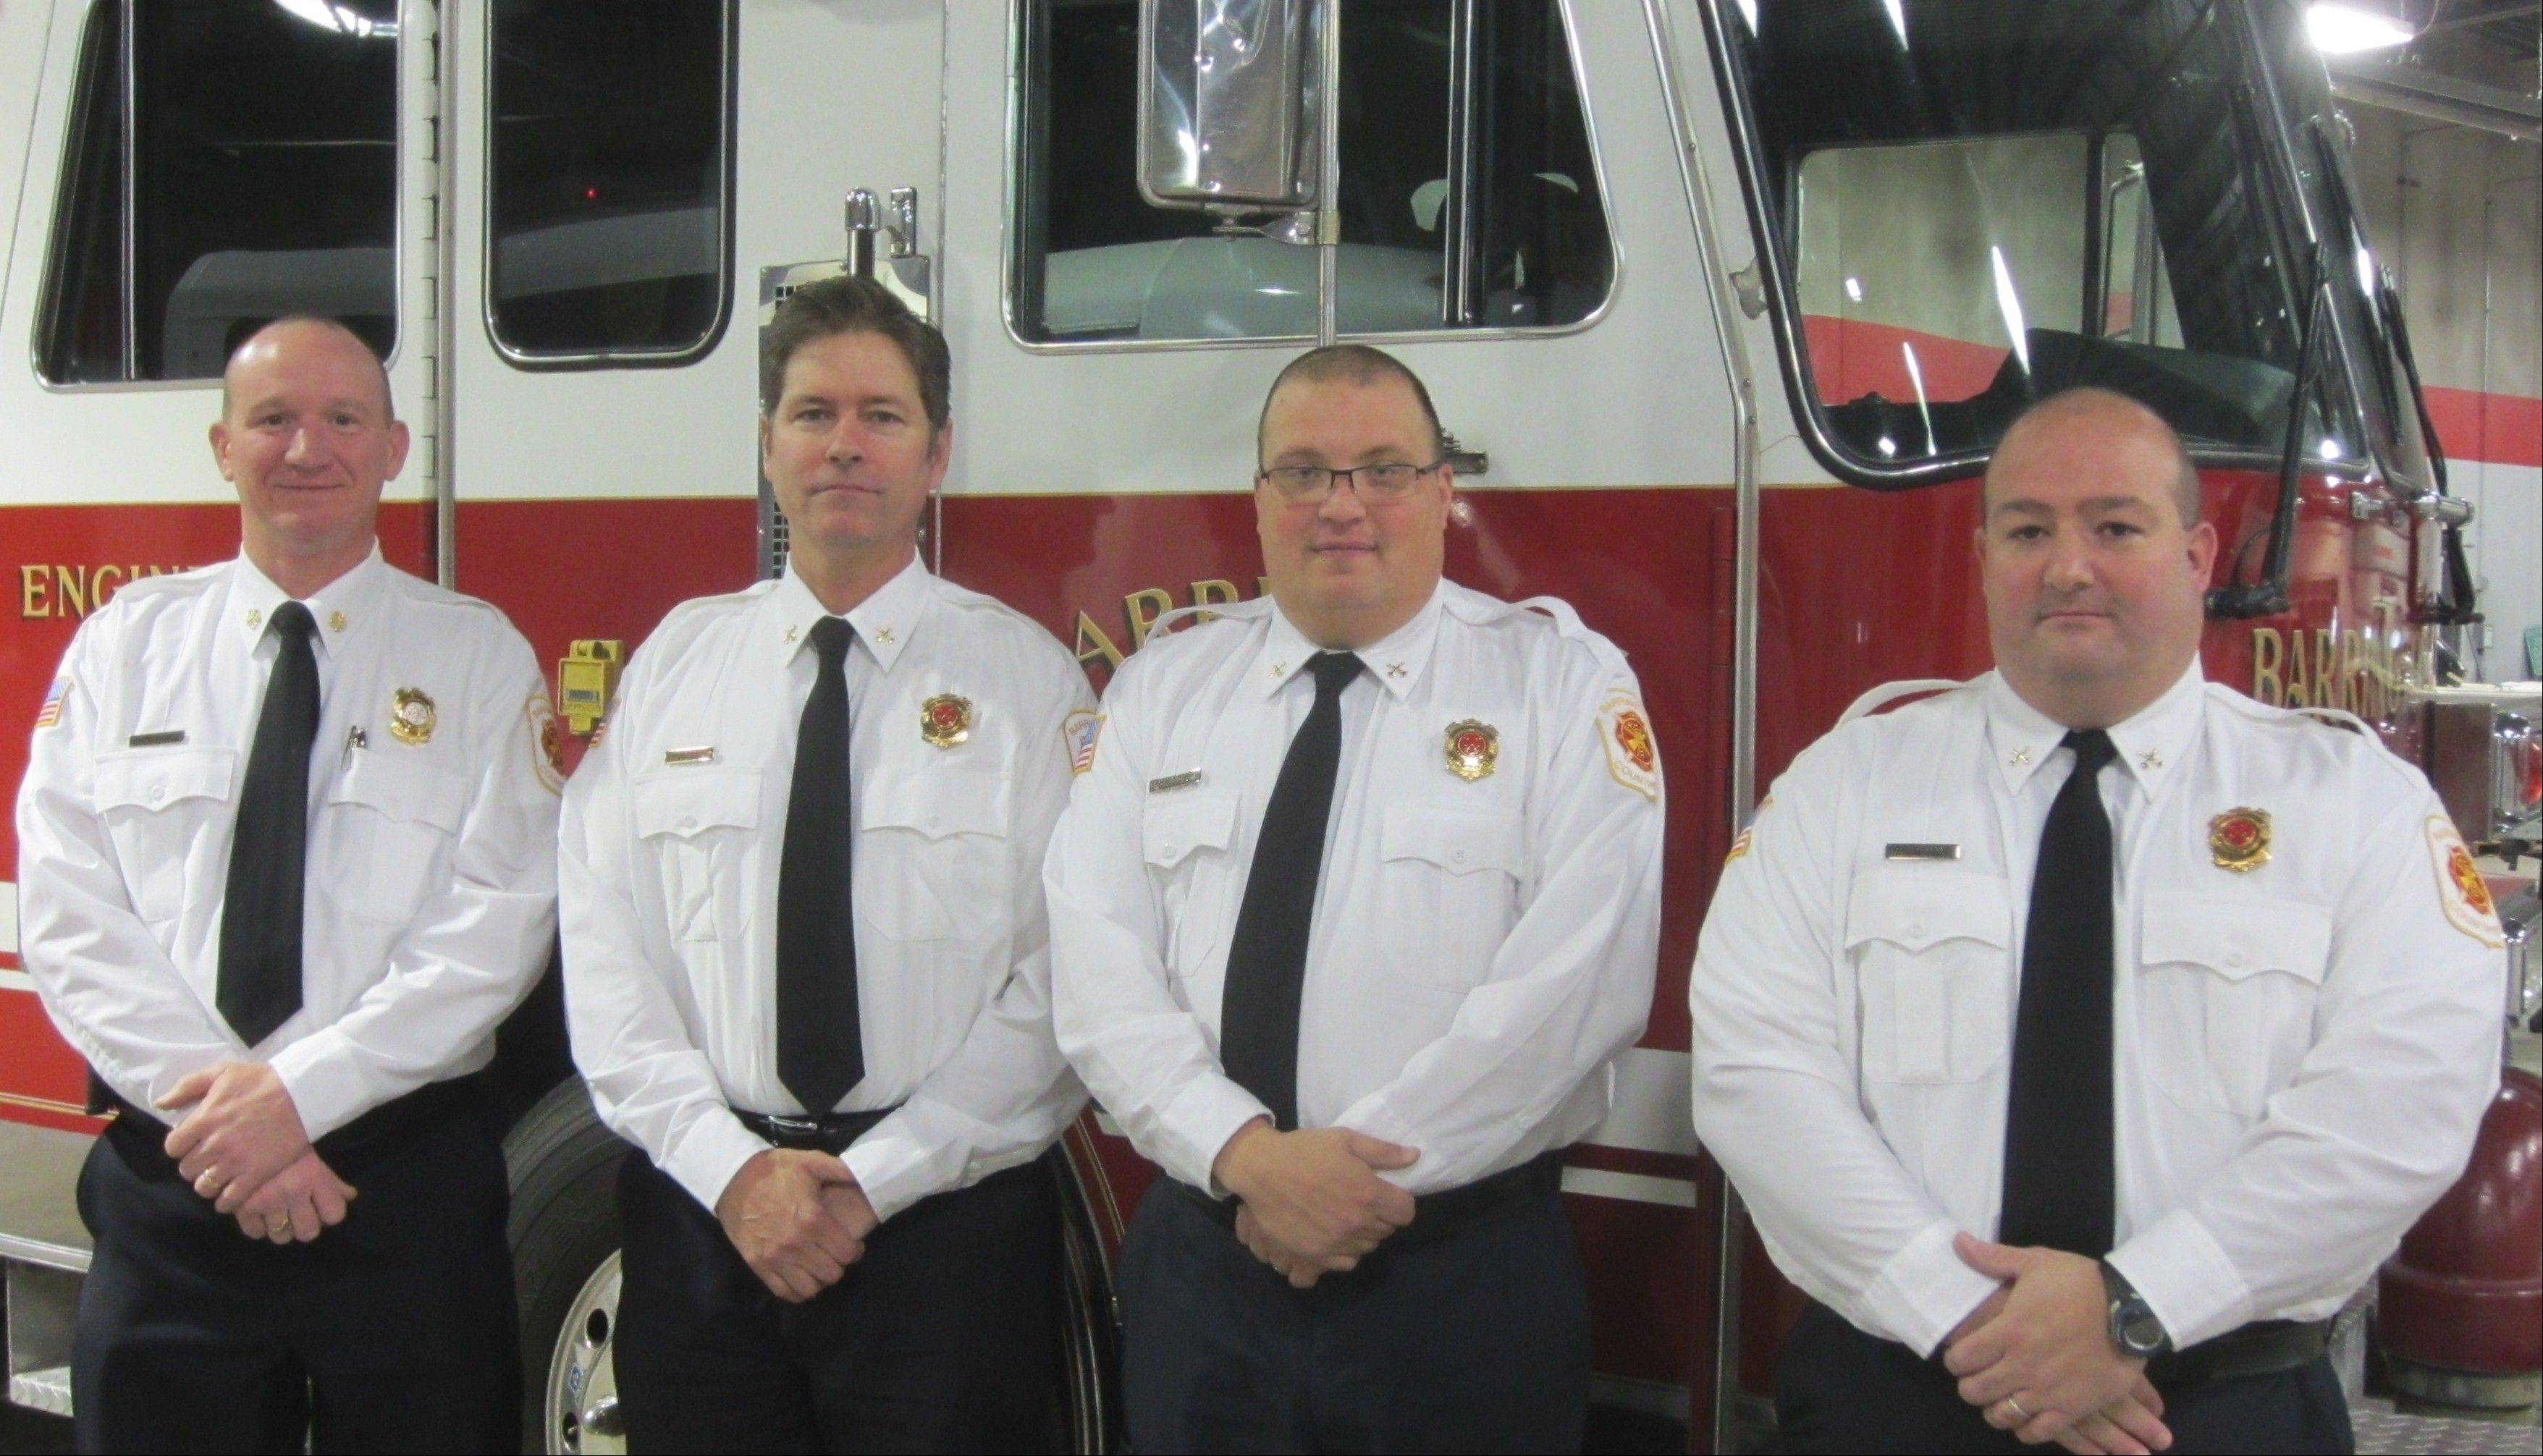 Barrington fire district adds three battalion chiefs